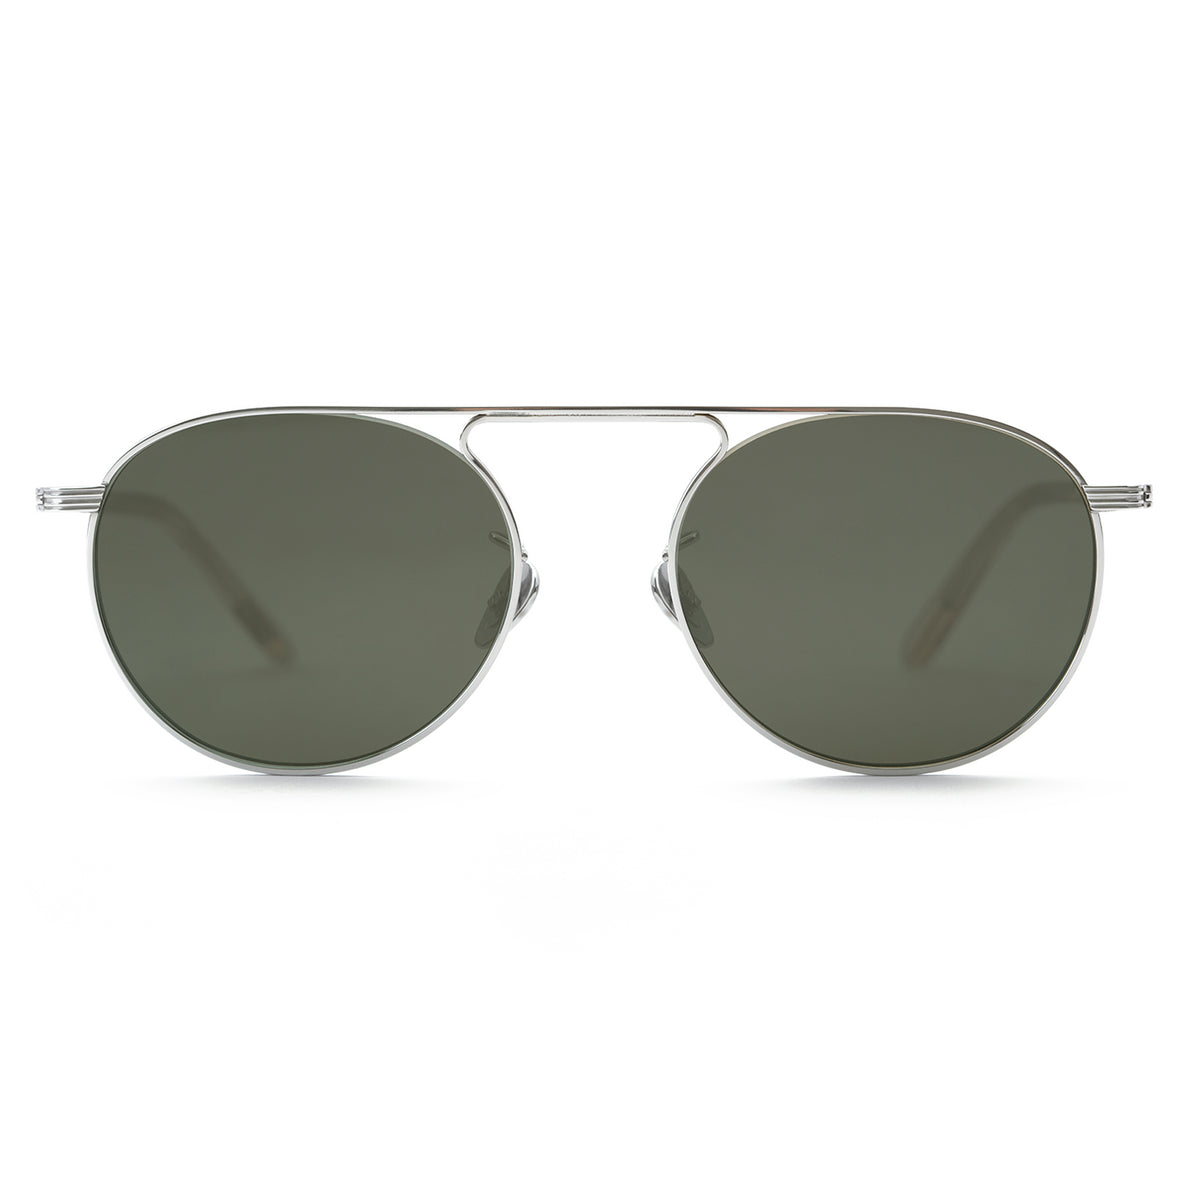 RAMPART | Titanium + Buff handcrafted acetate sunglasses